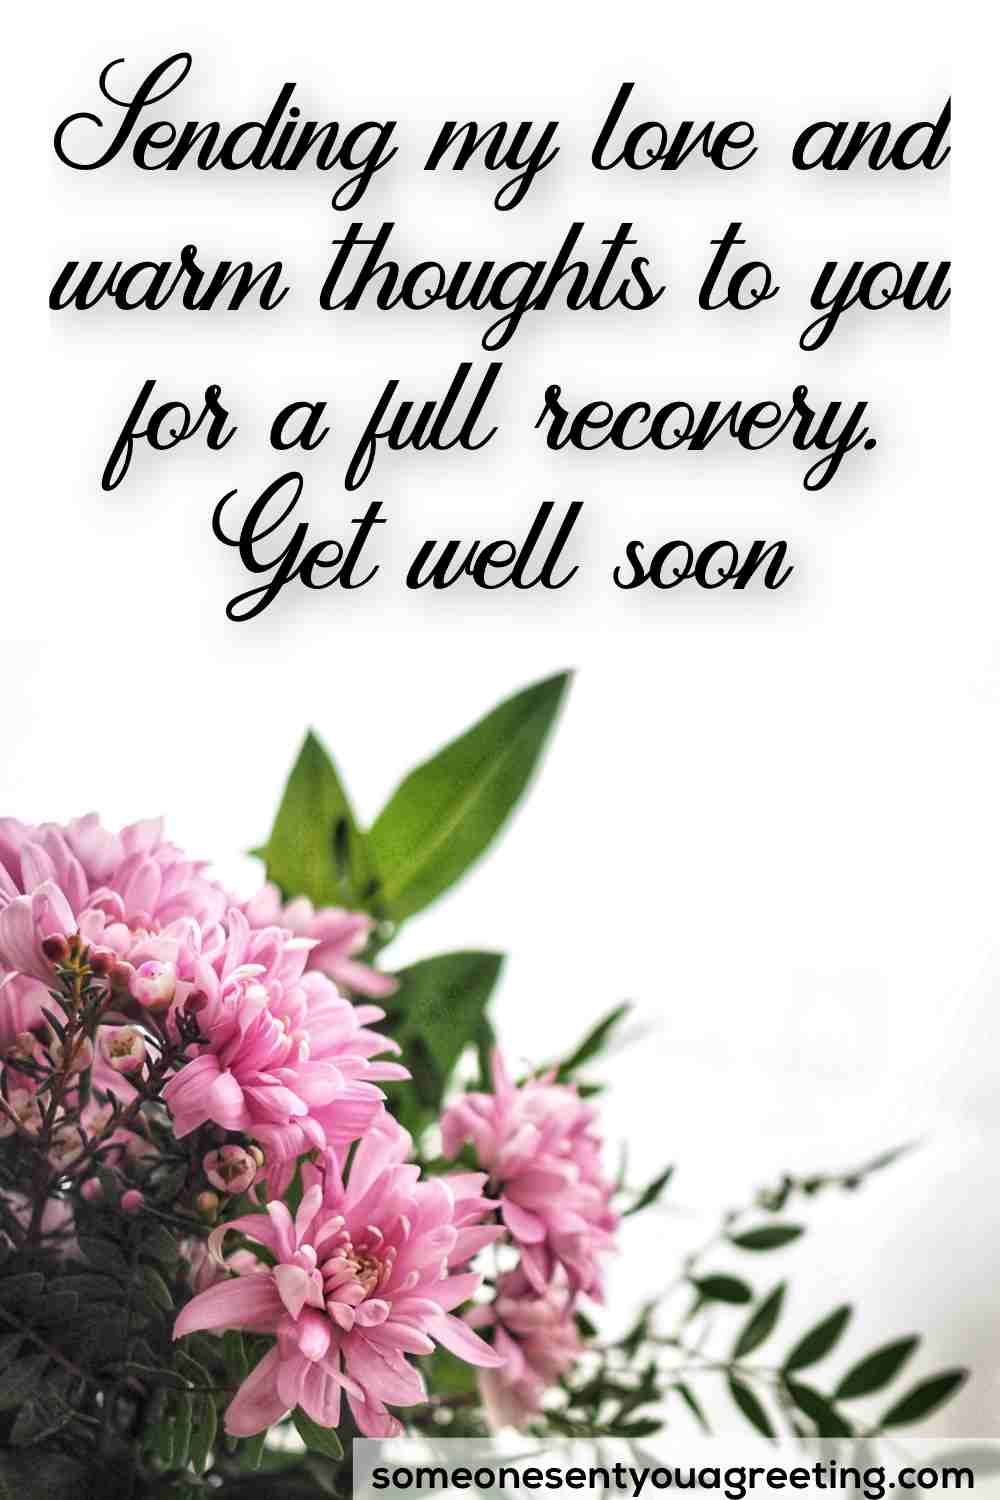 get well message for colleague